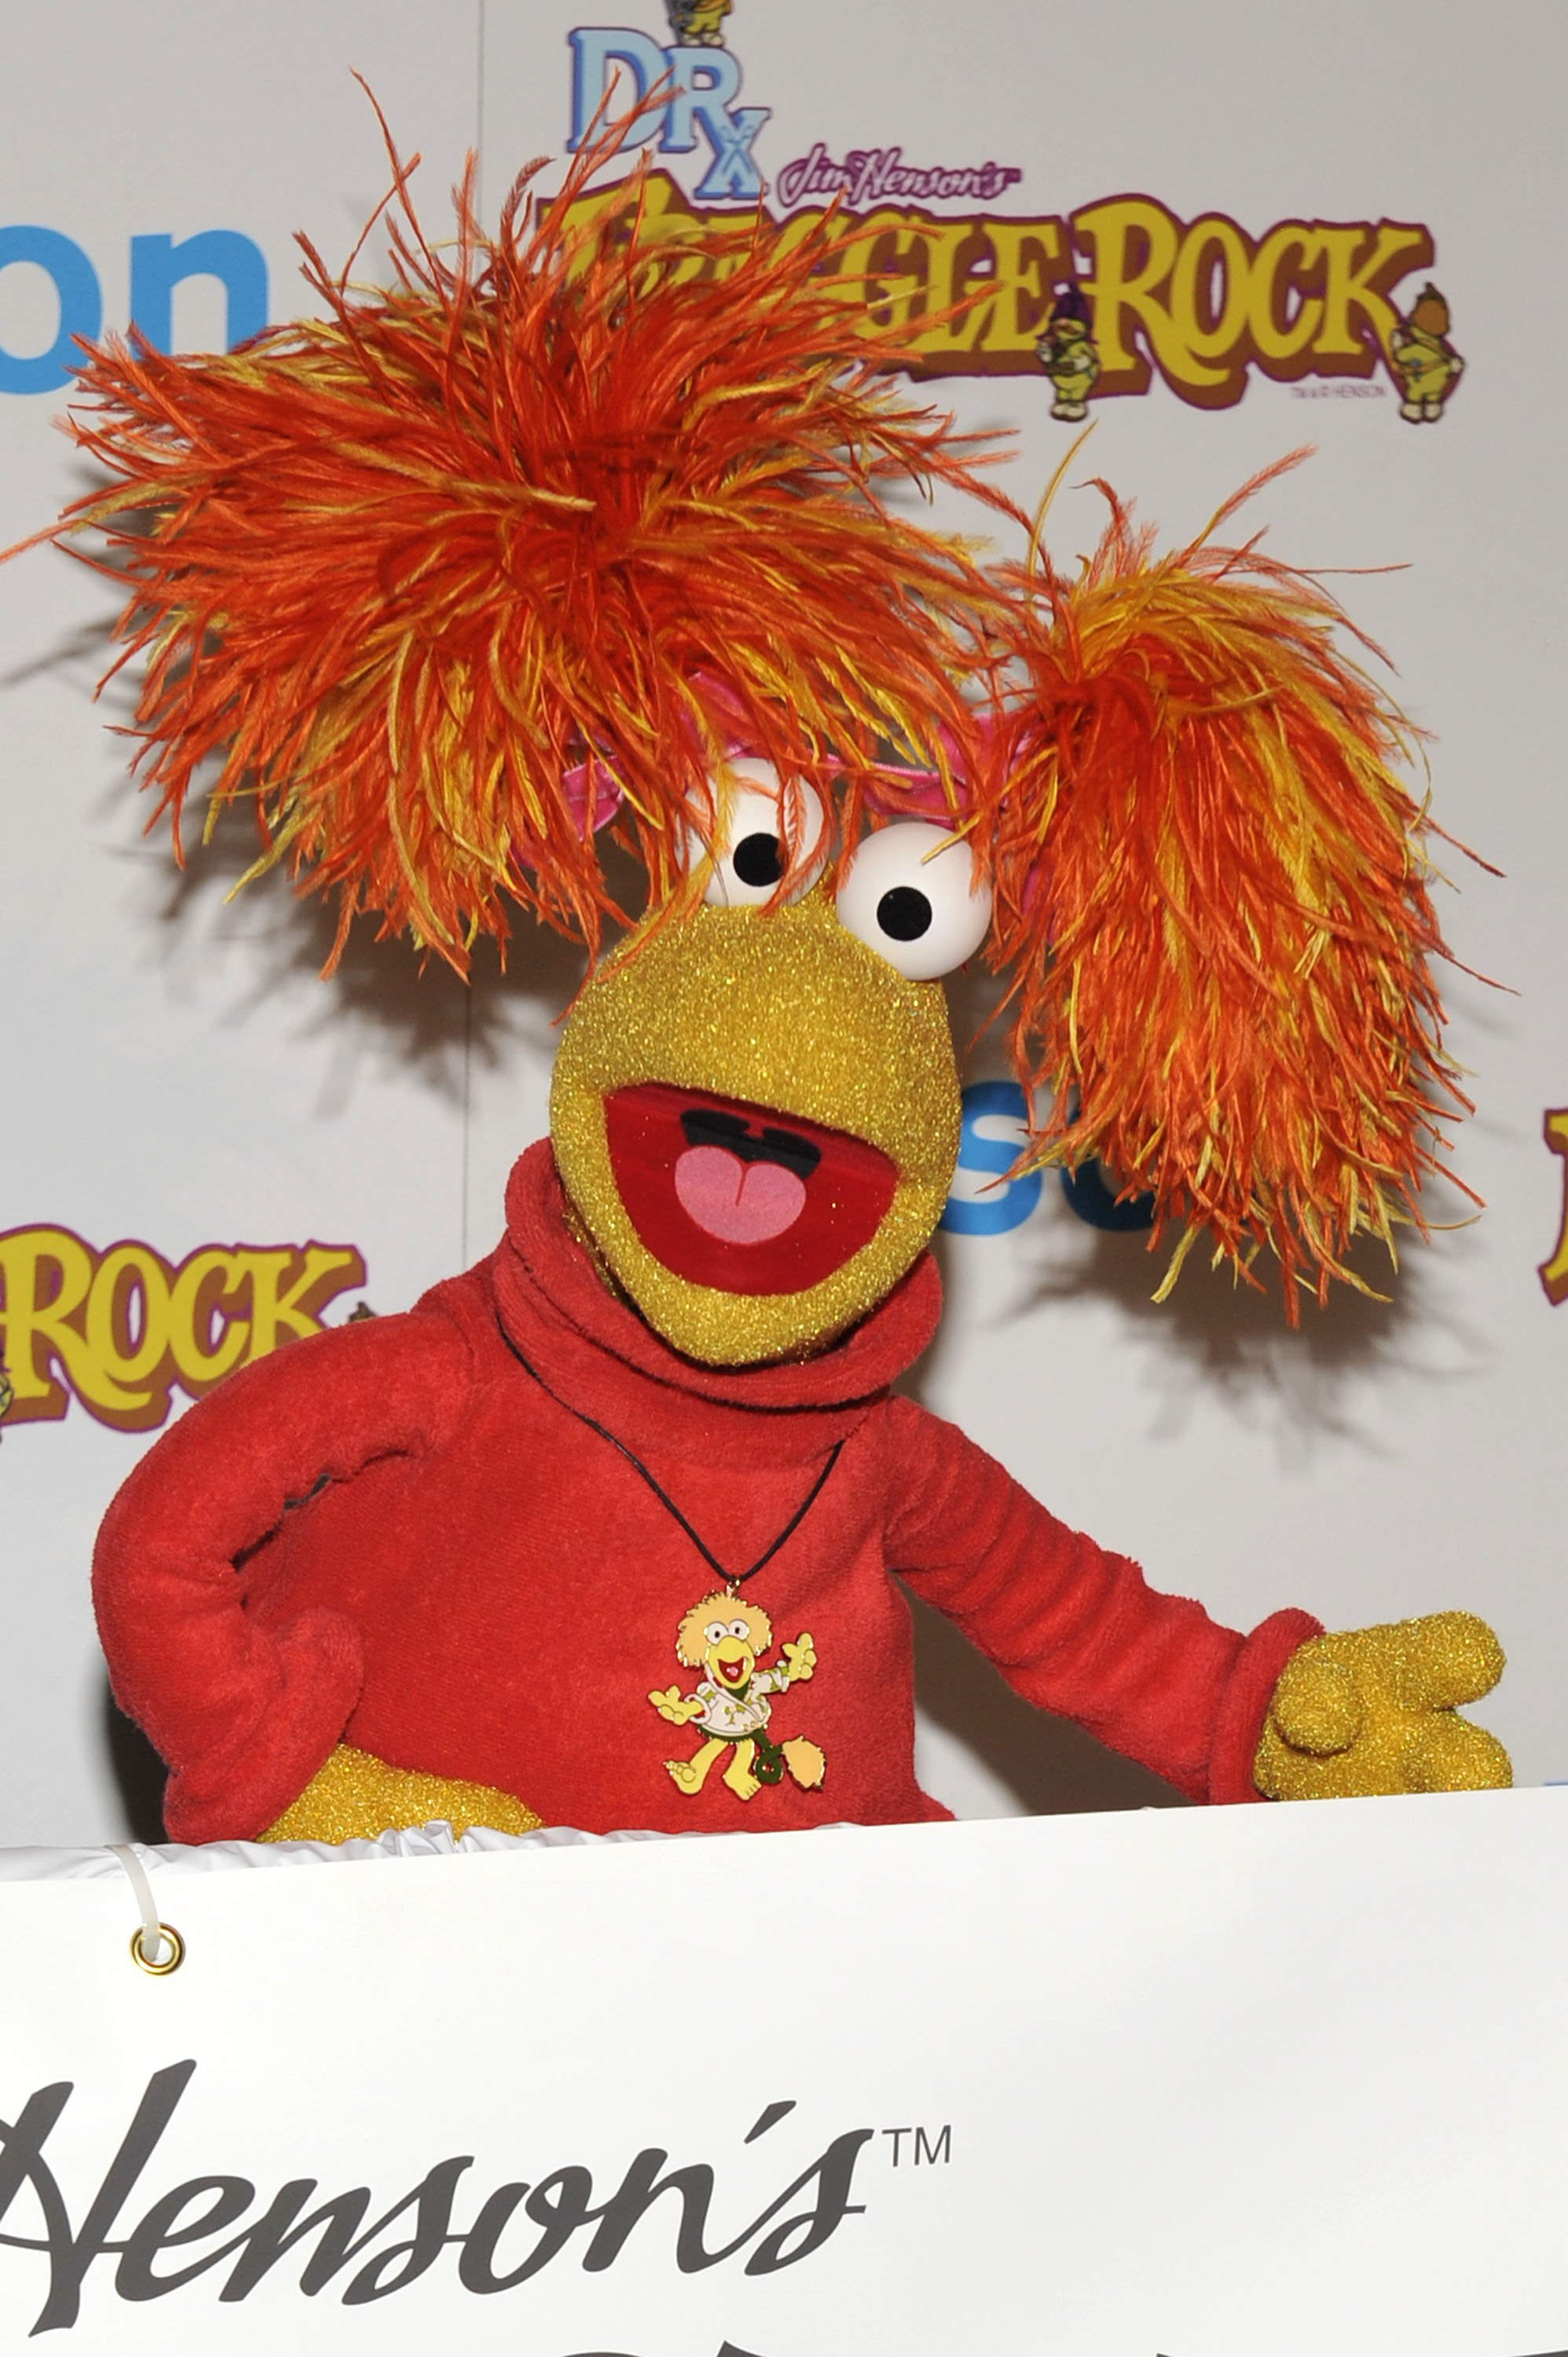 Red Fraggle poses for a picture at the Fraggle Rock event held at Kitson on December 9, 2009 in West Hollywood